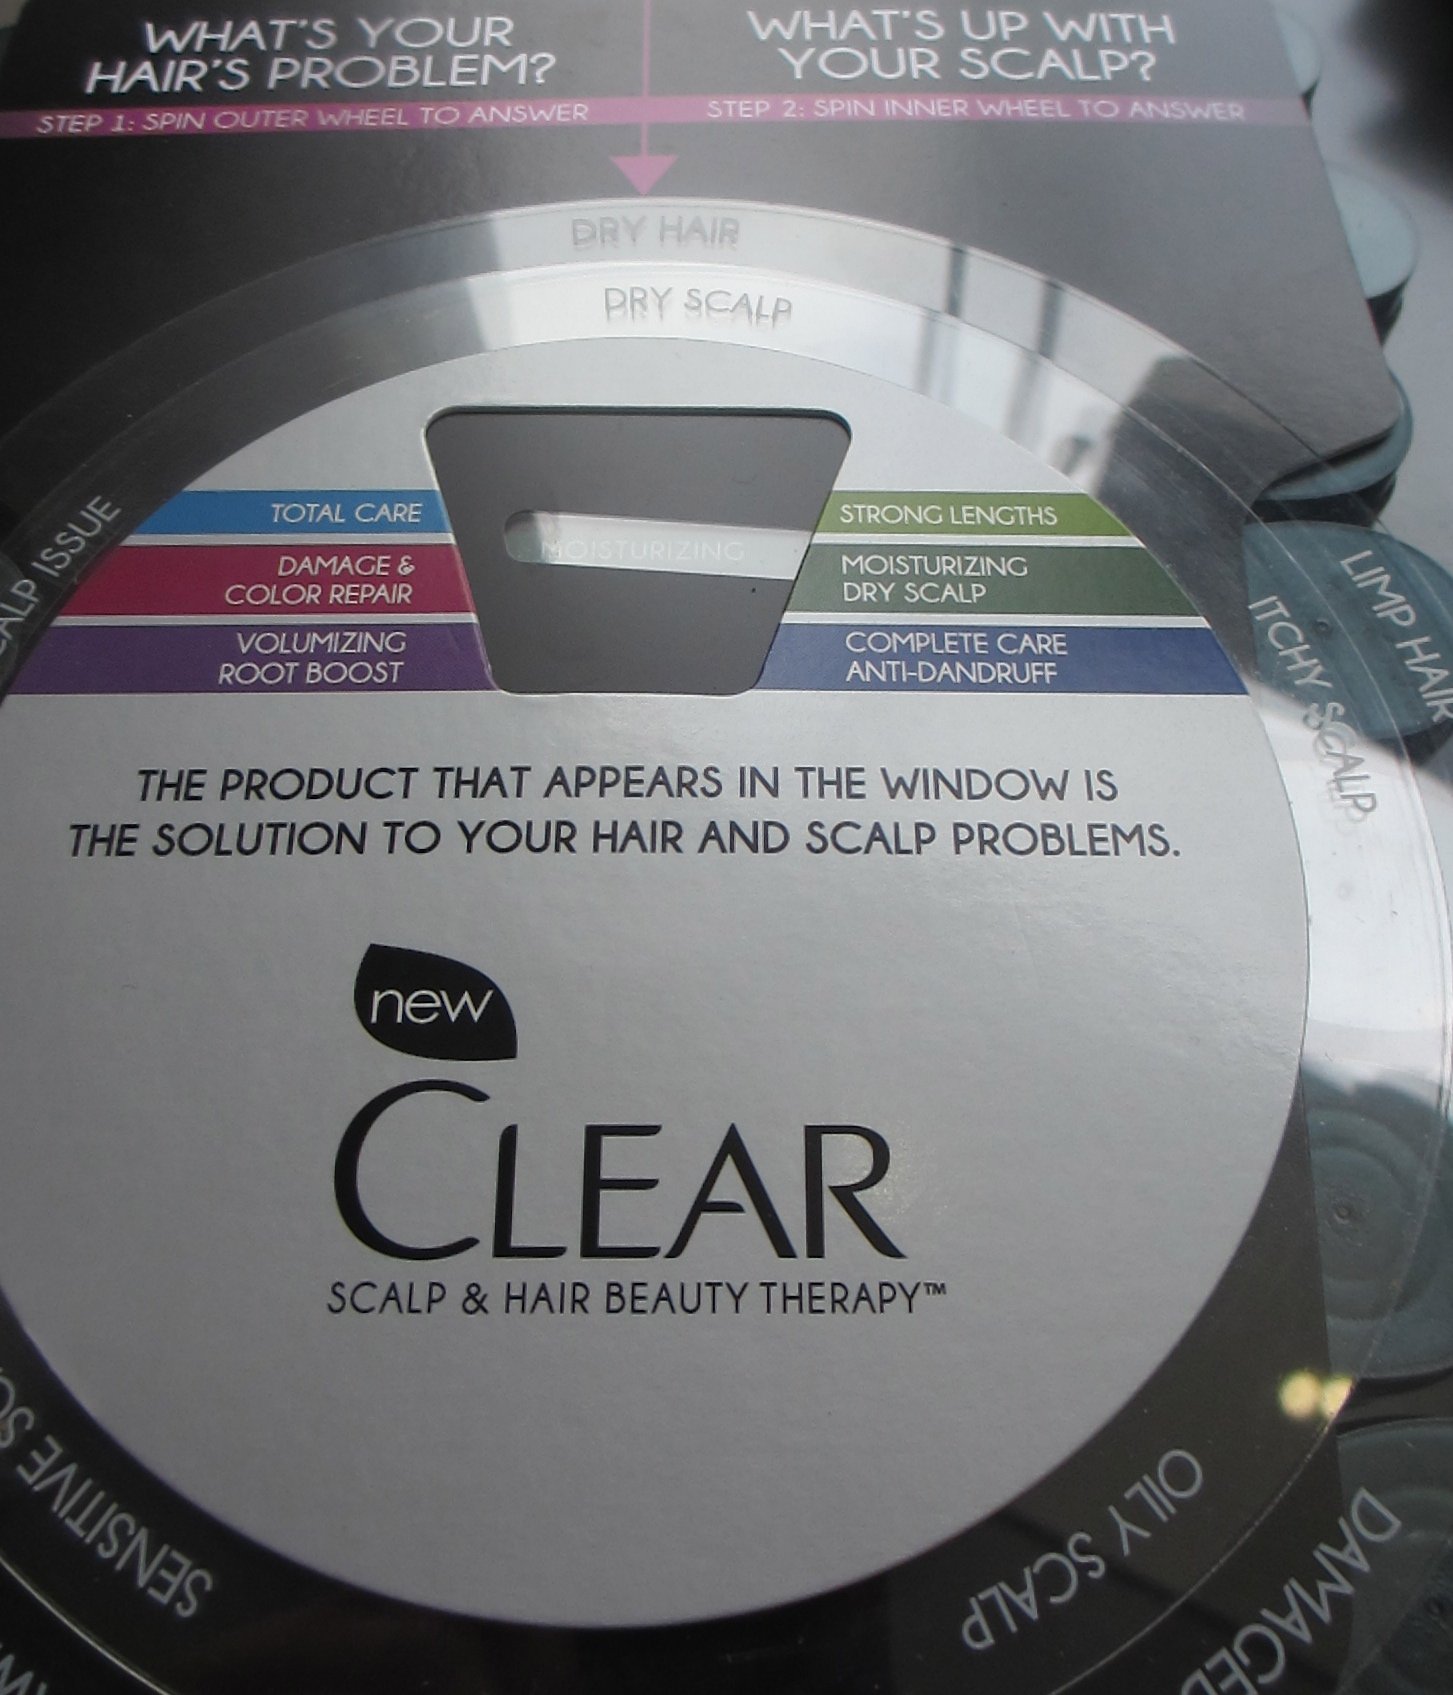 New Clear Scalp and Hair Therapy at Duane Reade